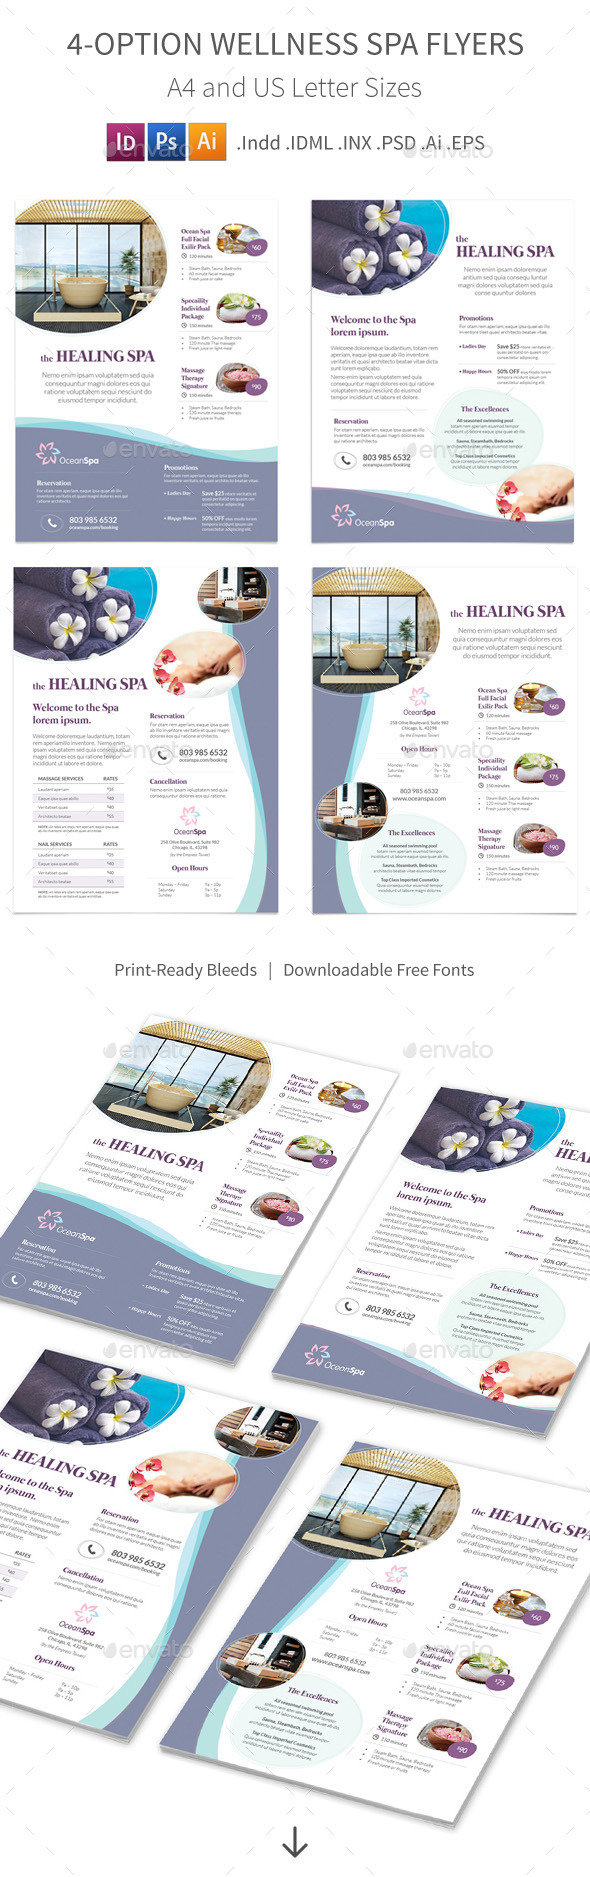 GraphicRiver Wellness Spa Flyers 4 Options 9857156